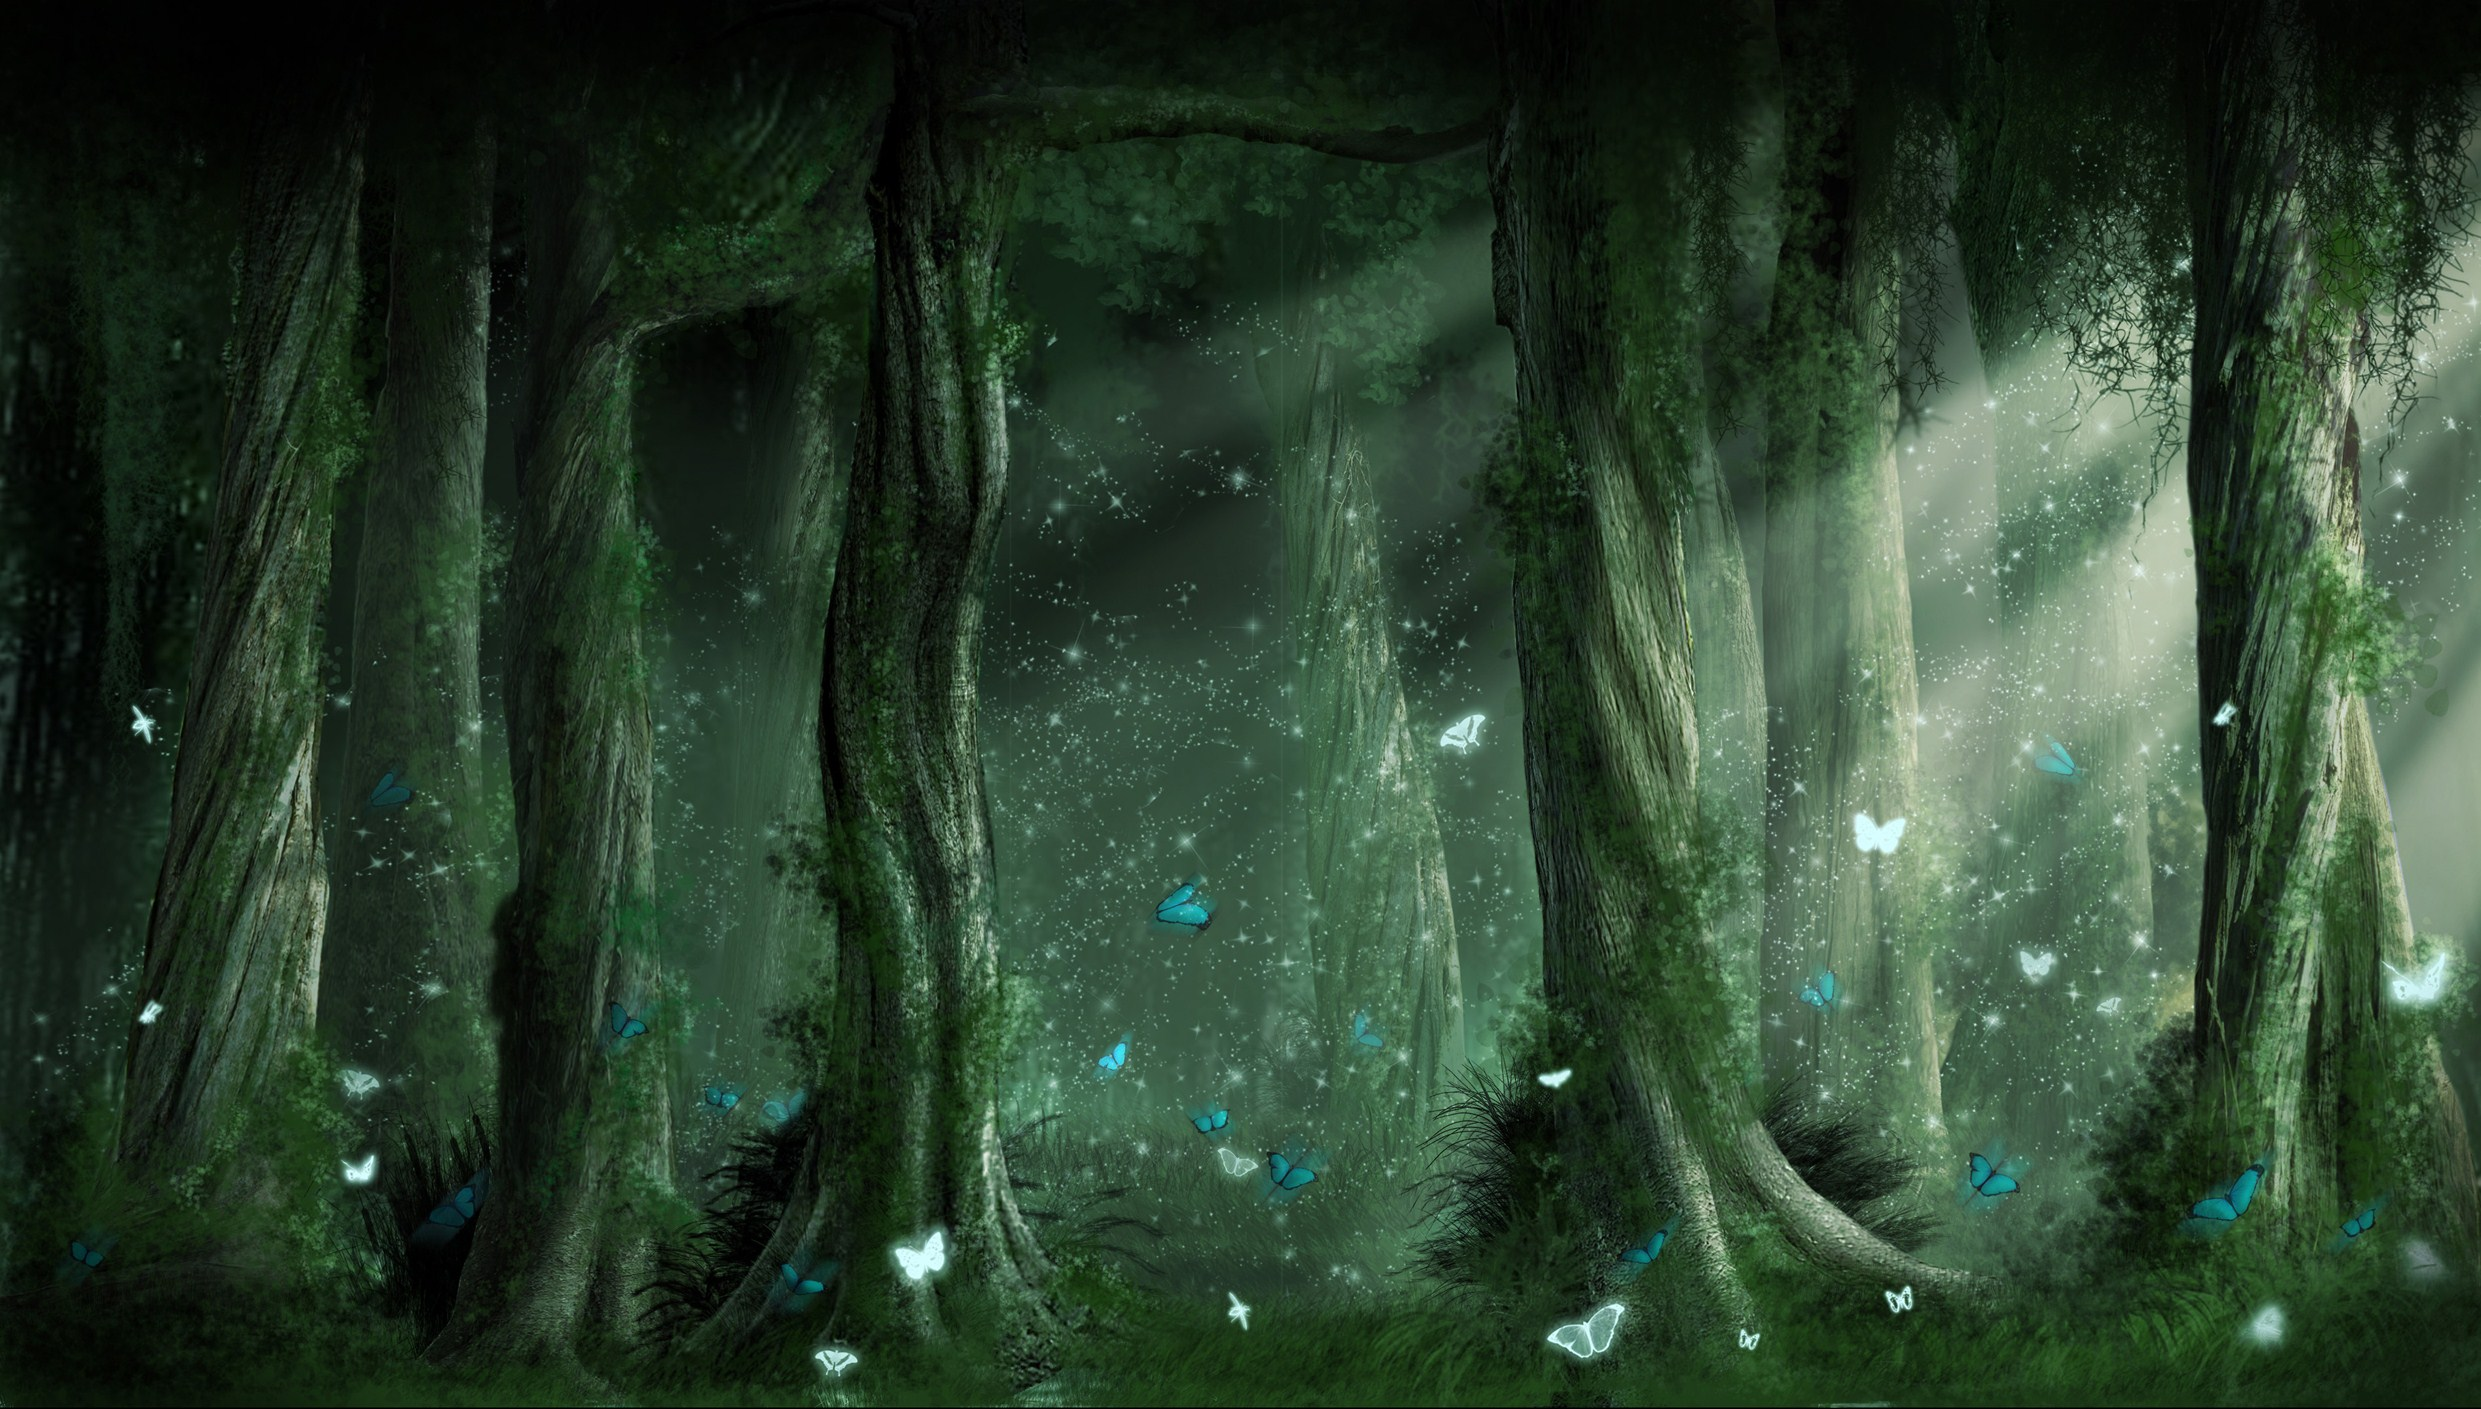 forest fantasy background 18575 2481x1409 px ~ hdwallsource